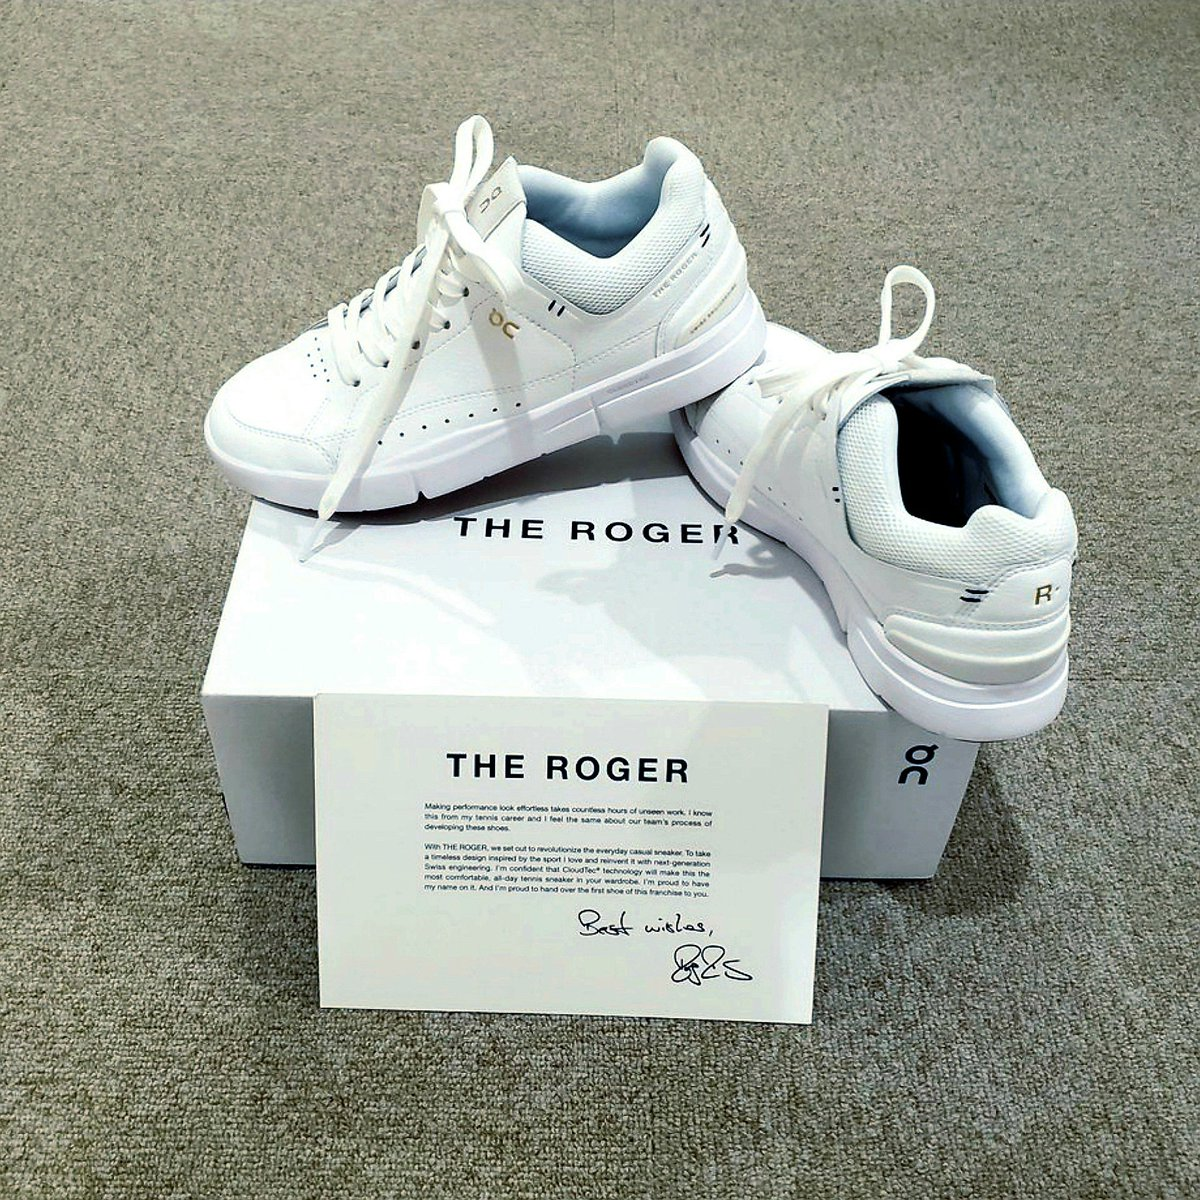 So excited 🤗 I FINALLY got my hands on a pair of #THEROGER Centre Court 0-Series from @on_running 👟 This is pure understated cool, brilliantly simple design, classy and comfy white sneakers. PeRFect! 💯 @rogerfederer 🇨🇭 #onrunning https://t.co/6vqZ5OnKuY